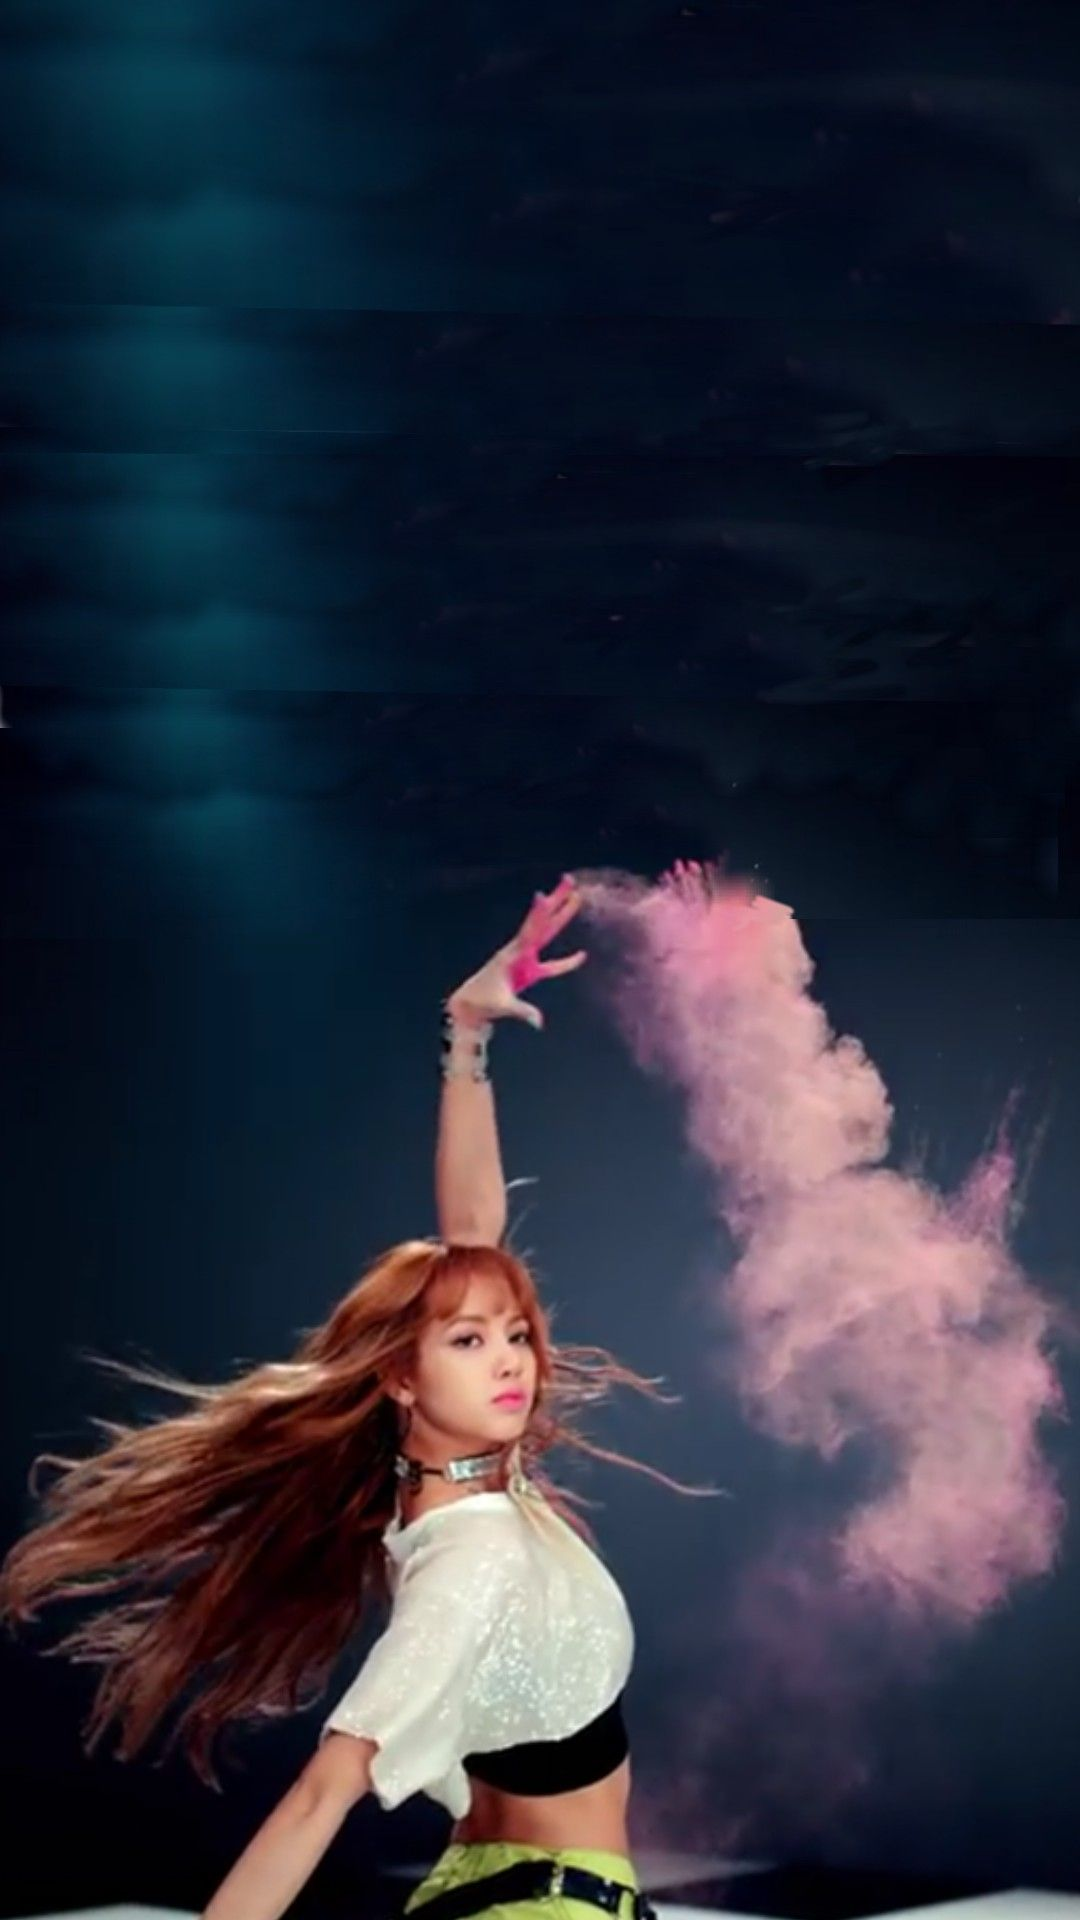 Ddu Du Ddu Du Blackpink Lisa Wallpaper Oppaaaaaaaaaa Blackpink